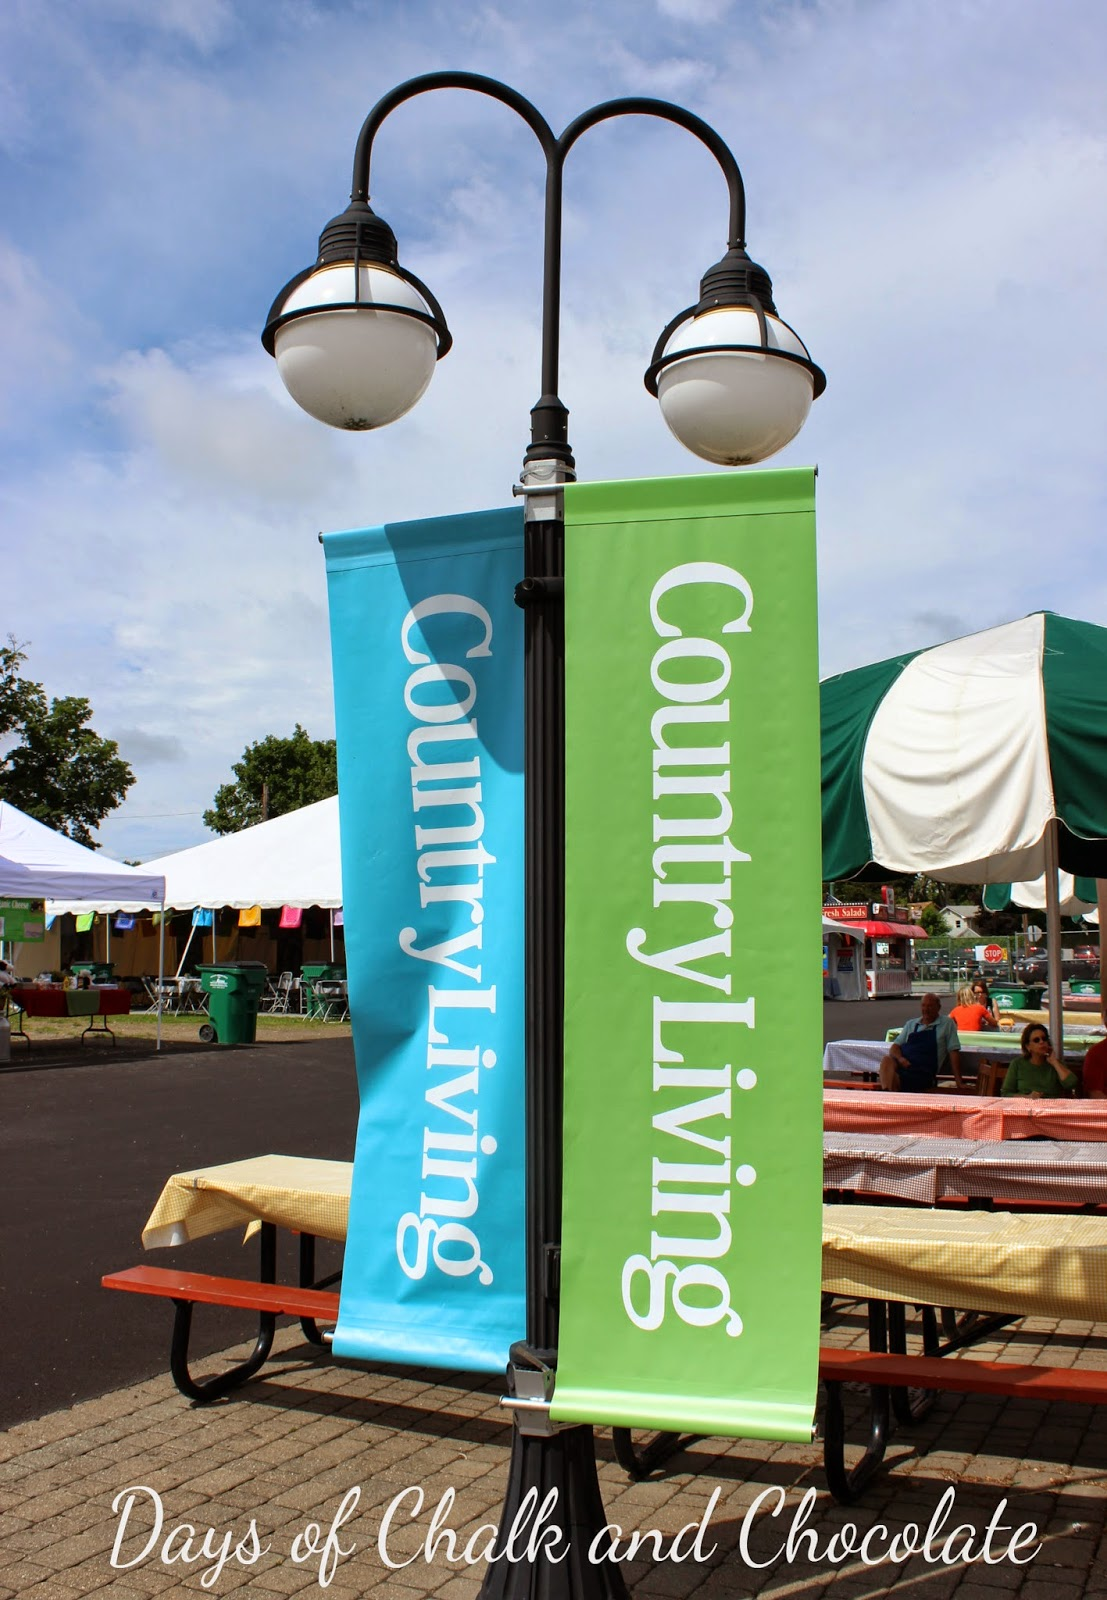 country living fair in rhinebeck ny this weekend days of chalk and